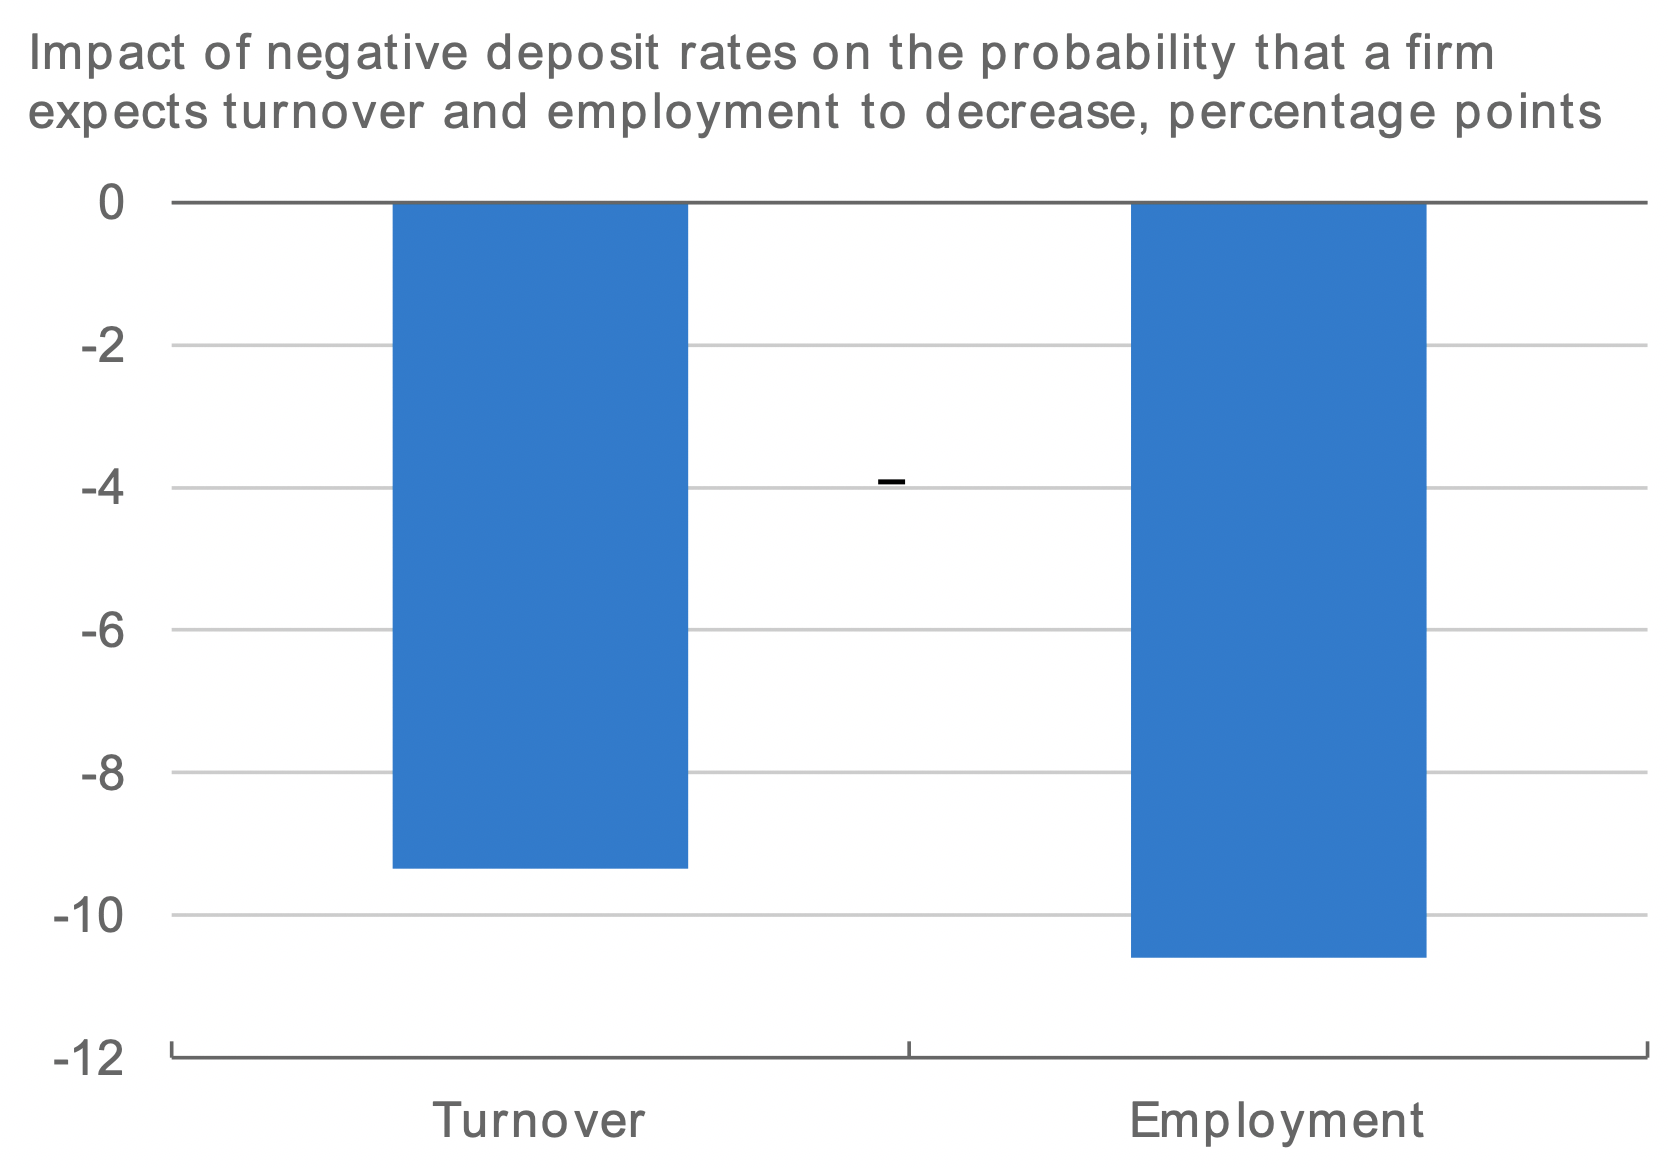 Firms facing negative deposit rates invest more and create more jobs 5